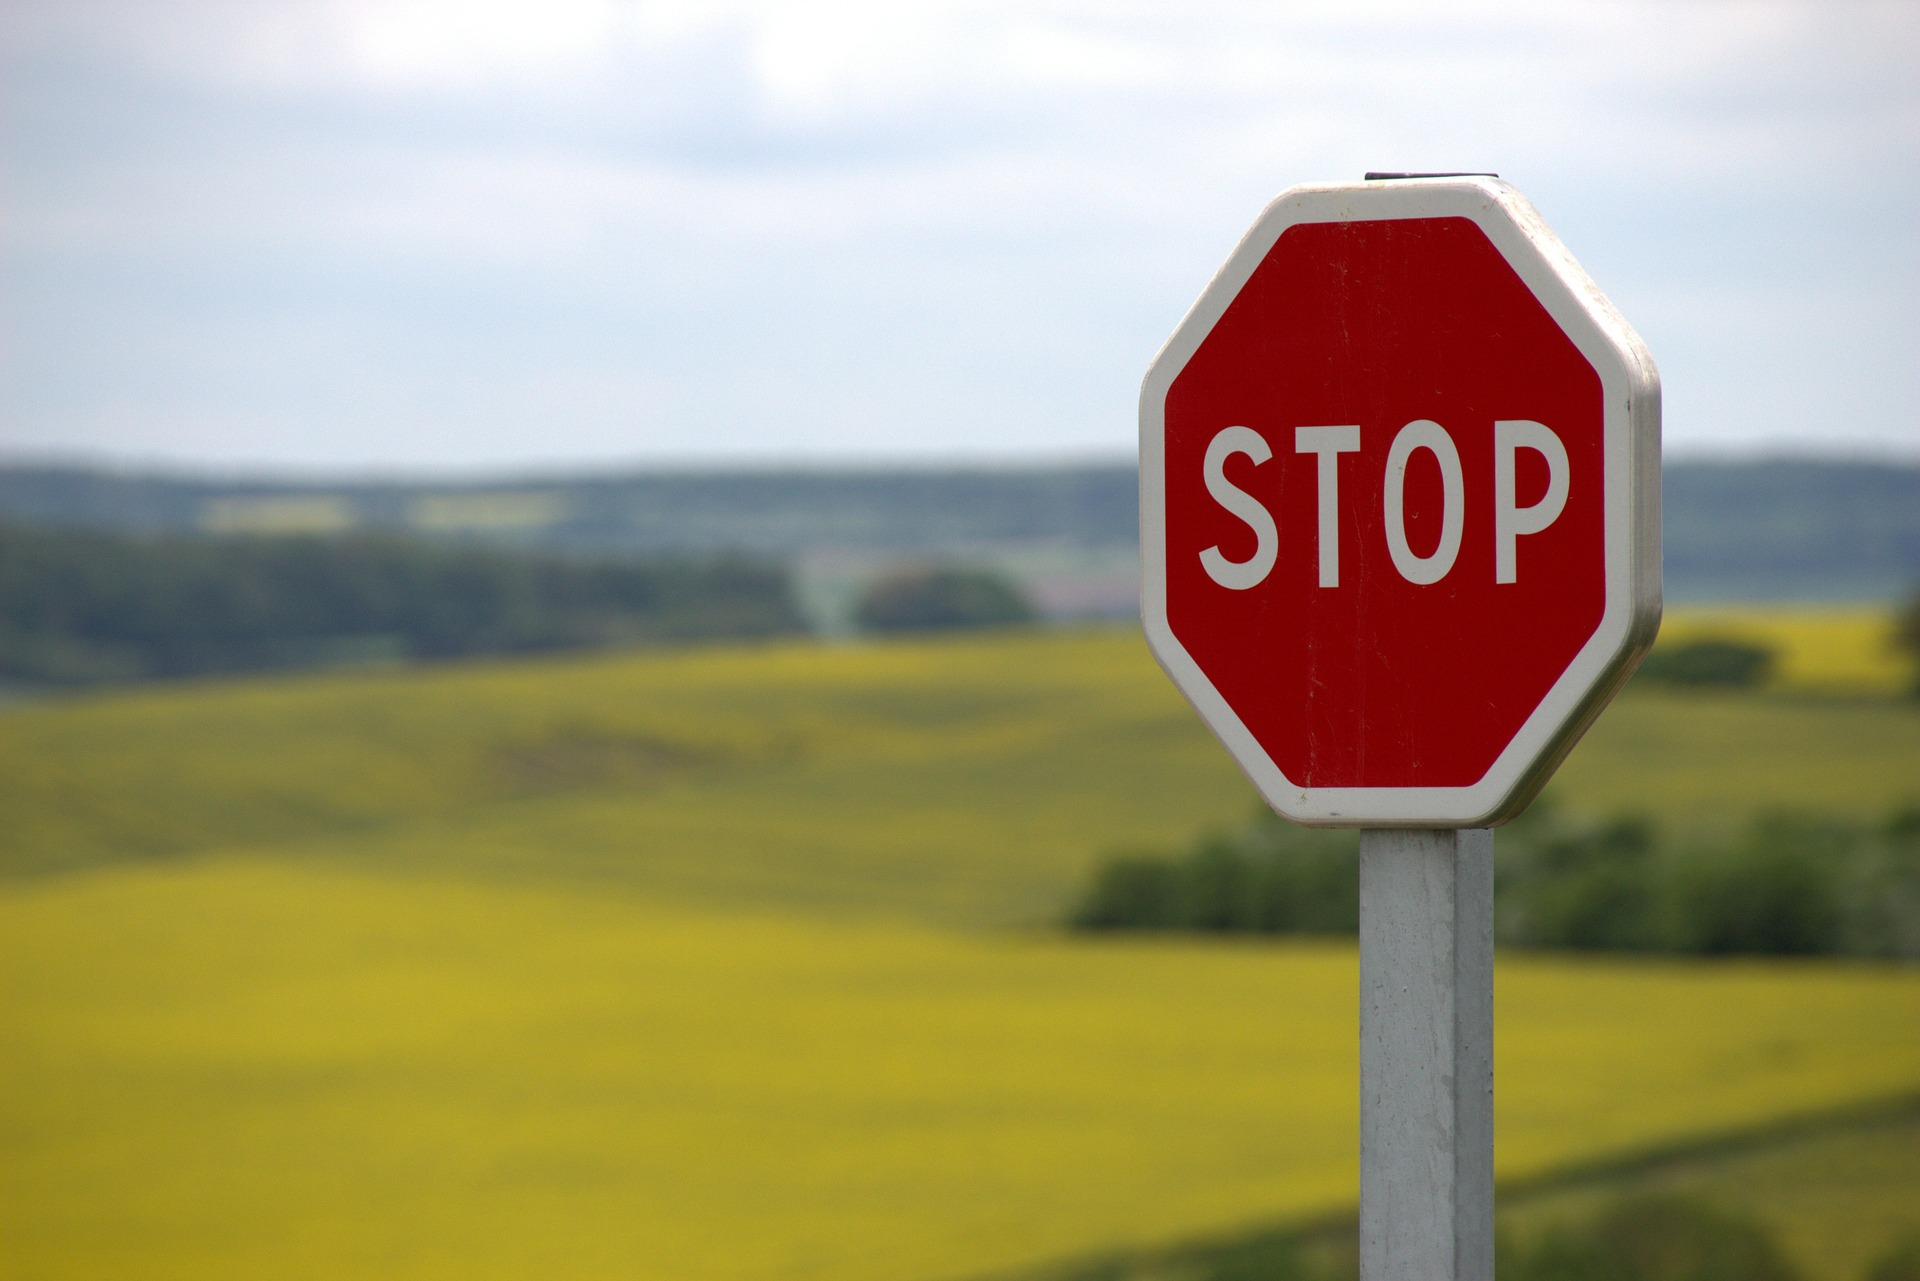 stop sign in a grass field